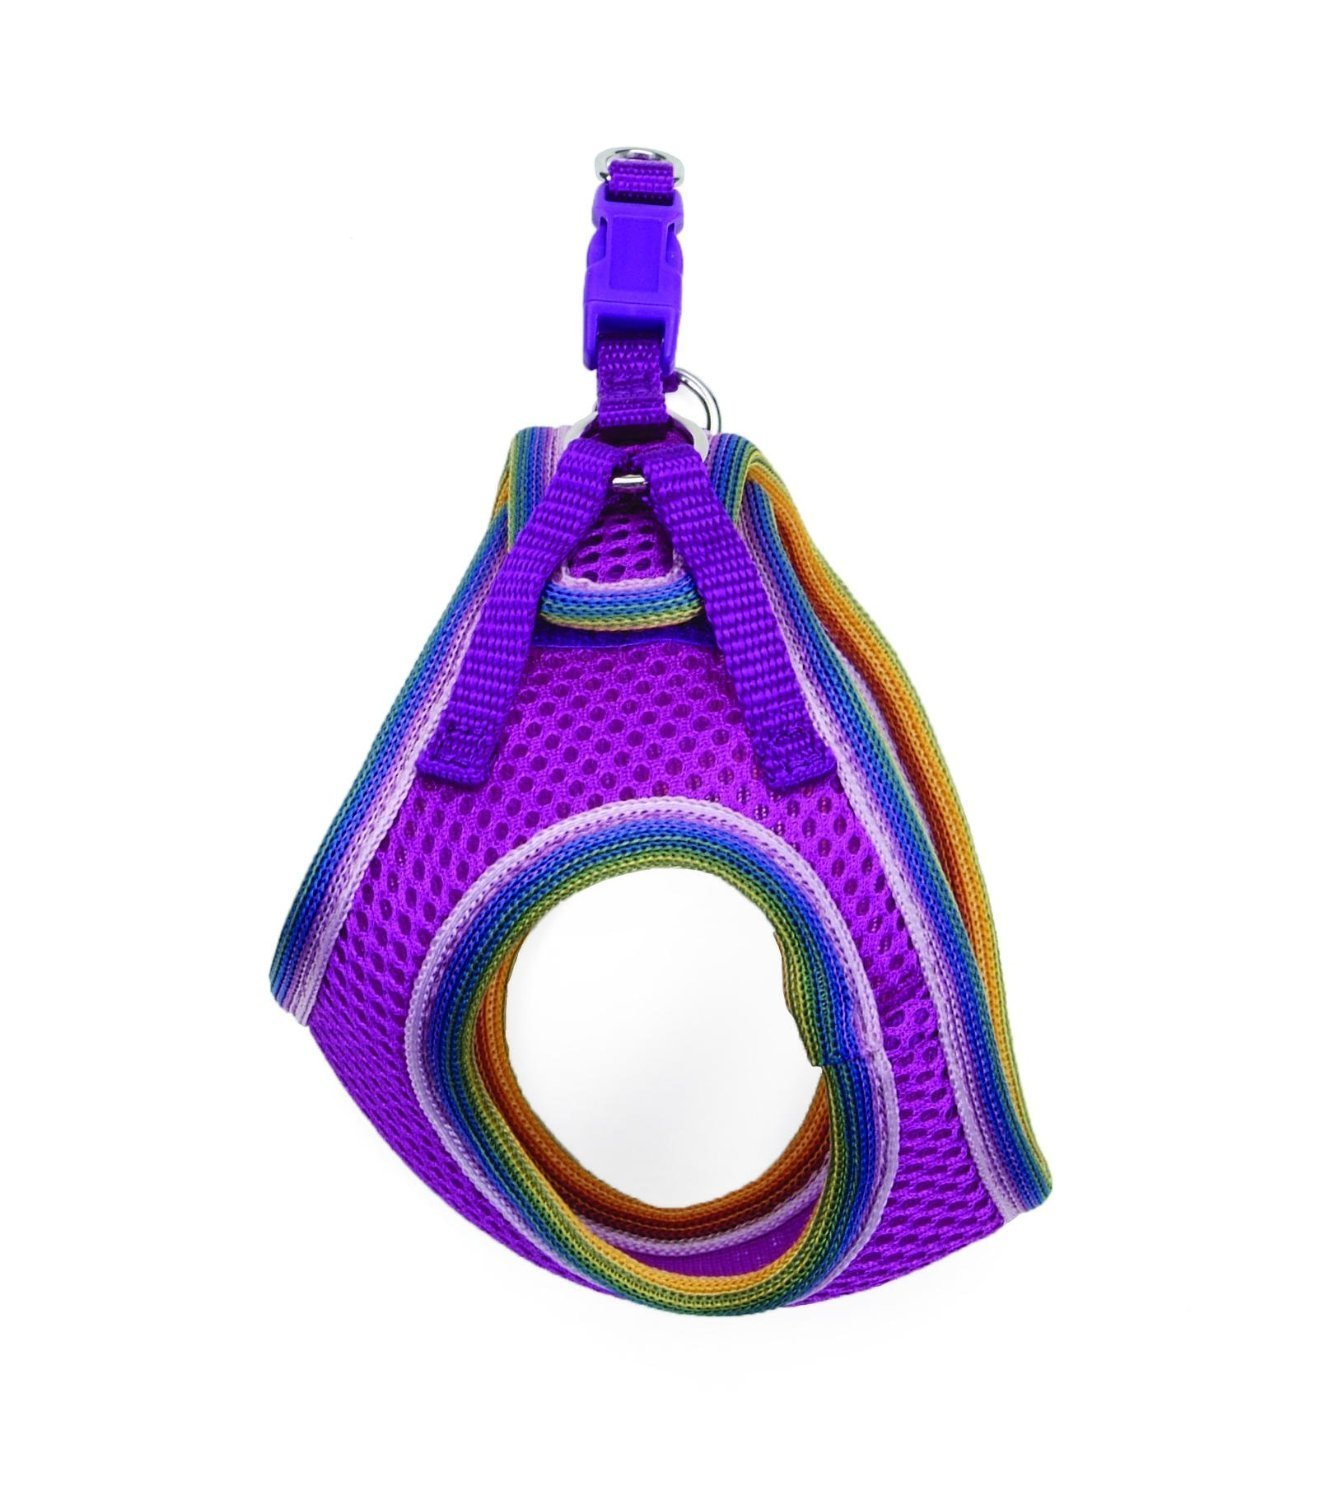 Lil Pals Mesh Comfort Mesh Adjustable Step-in Dog Harness for Puppies and Toy Breeds